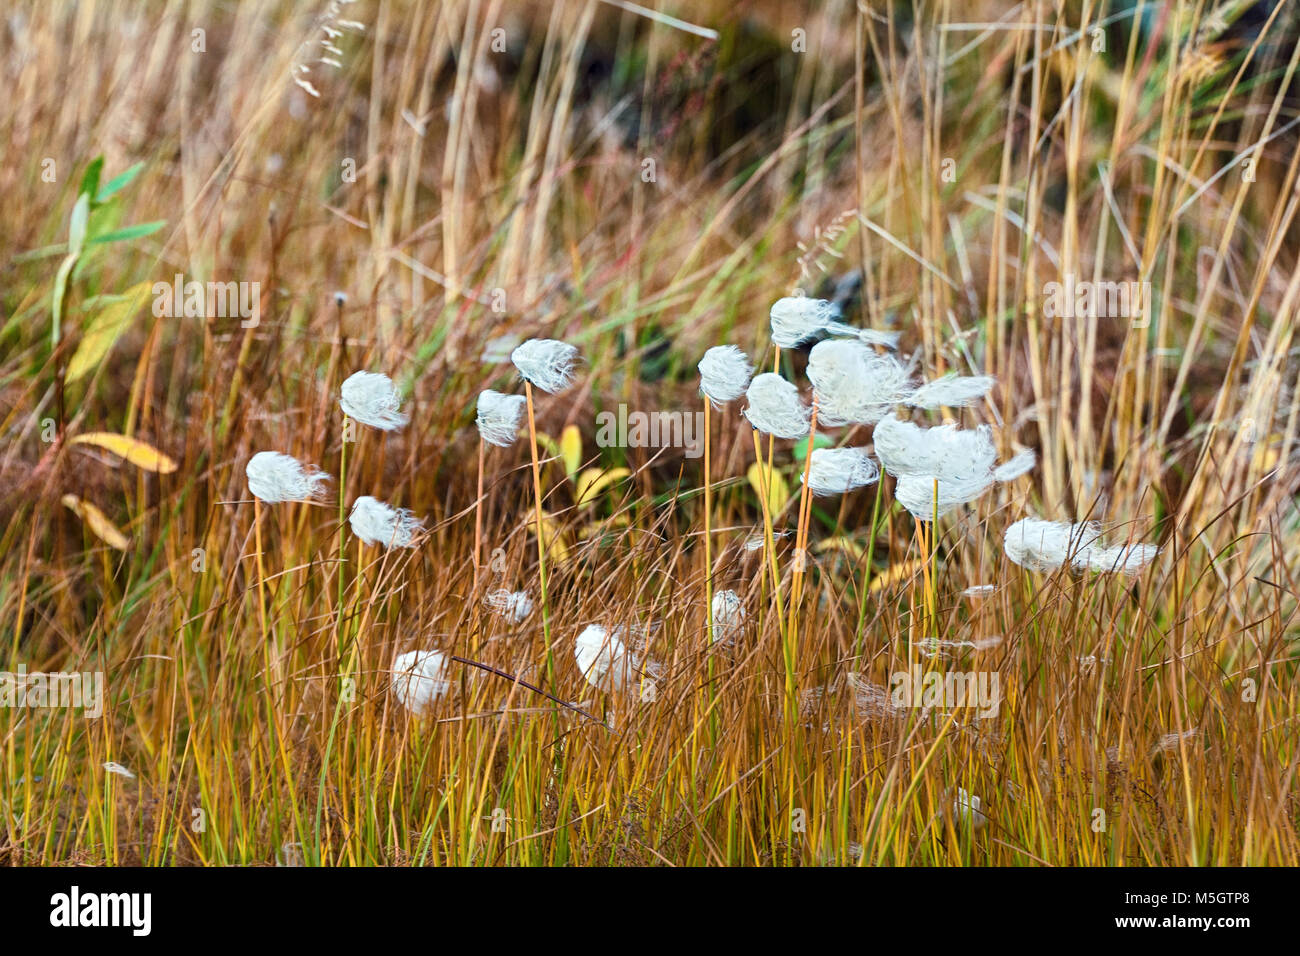 Cottongrass - her fruit blossoms resemble the heads of girls with tousled wind hair - Stock Image